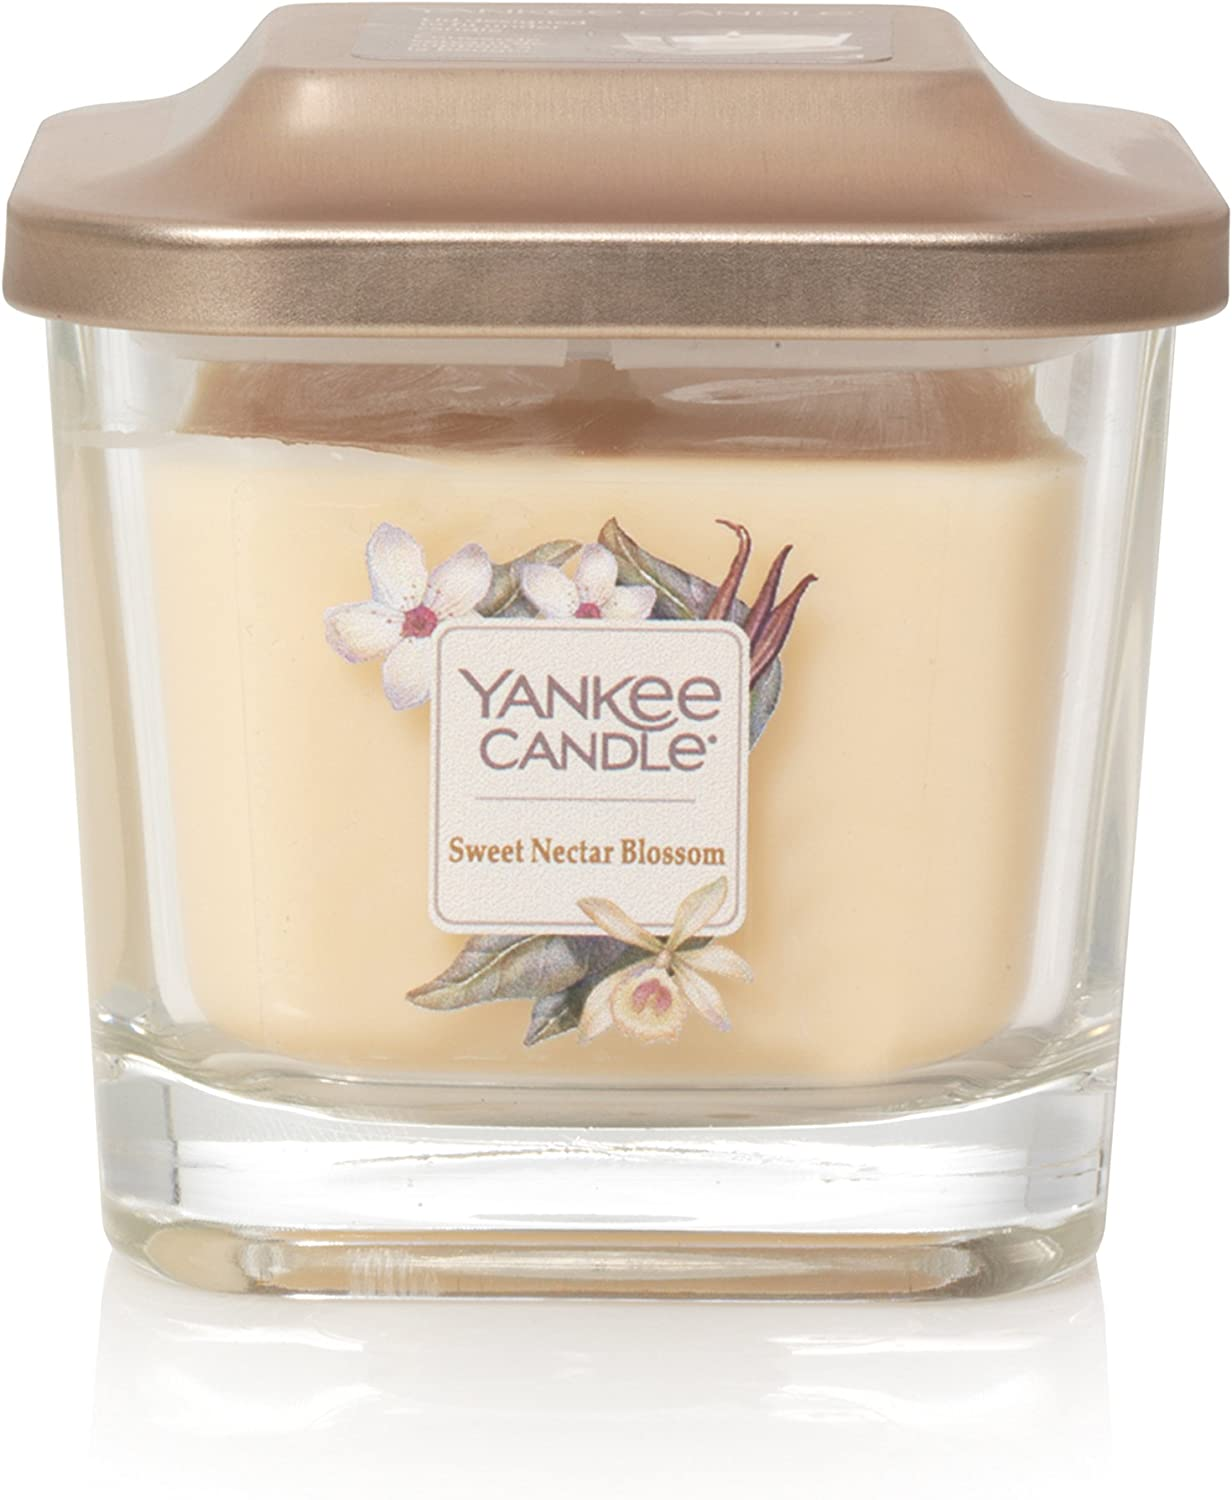 Yankee Candle Company Elevation Collection with Platform Lid, Small 1-Wick Candle